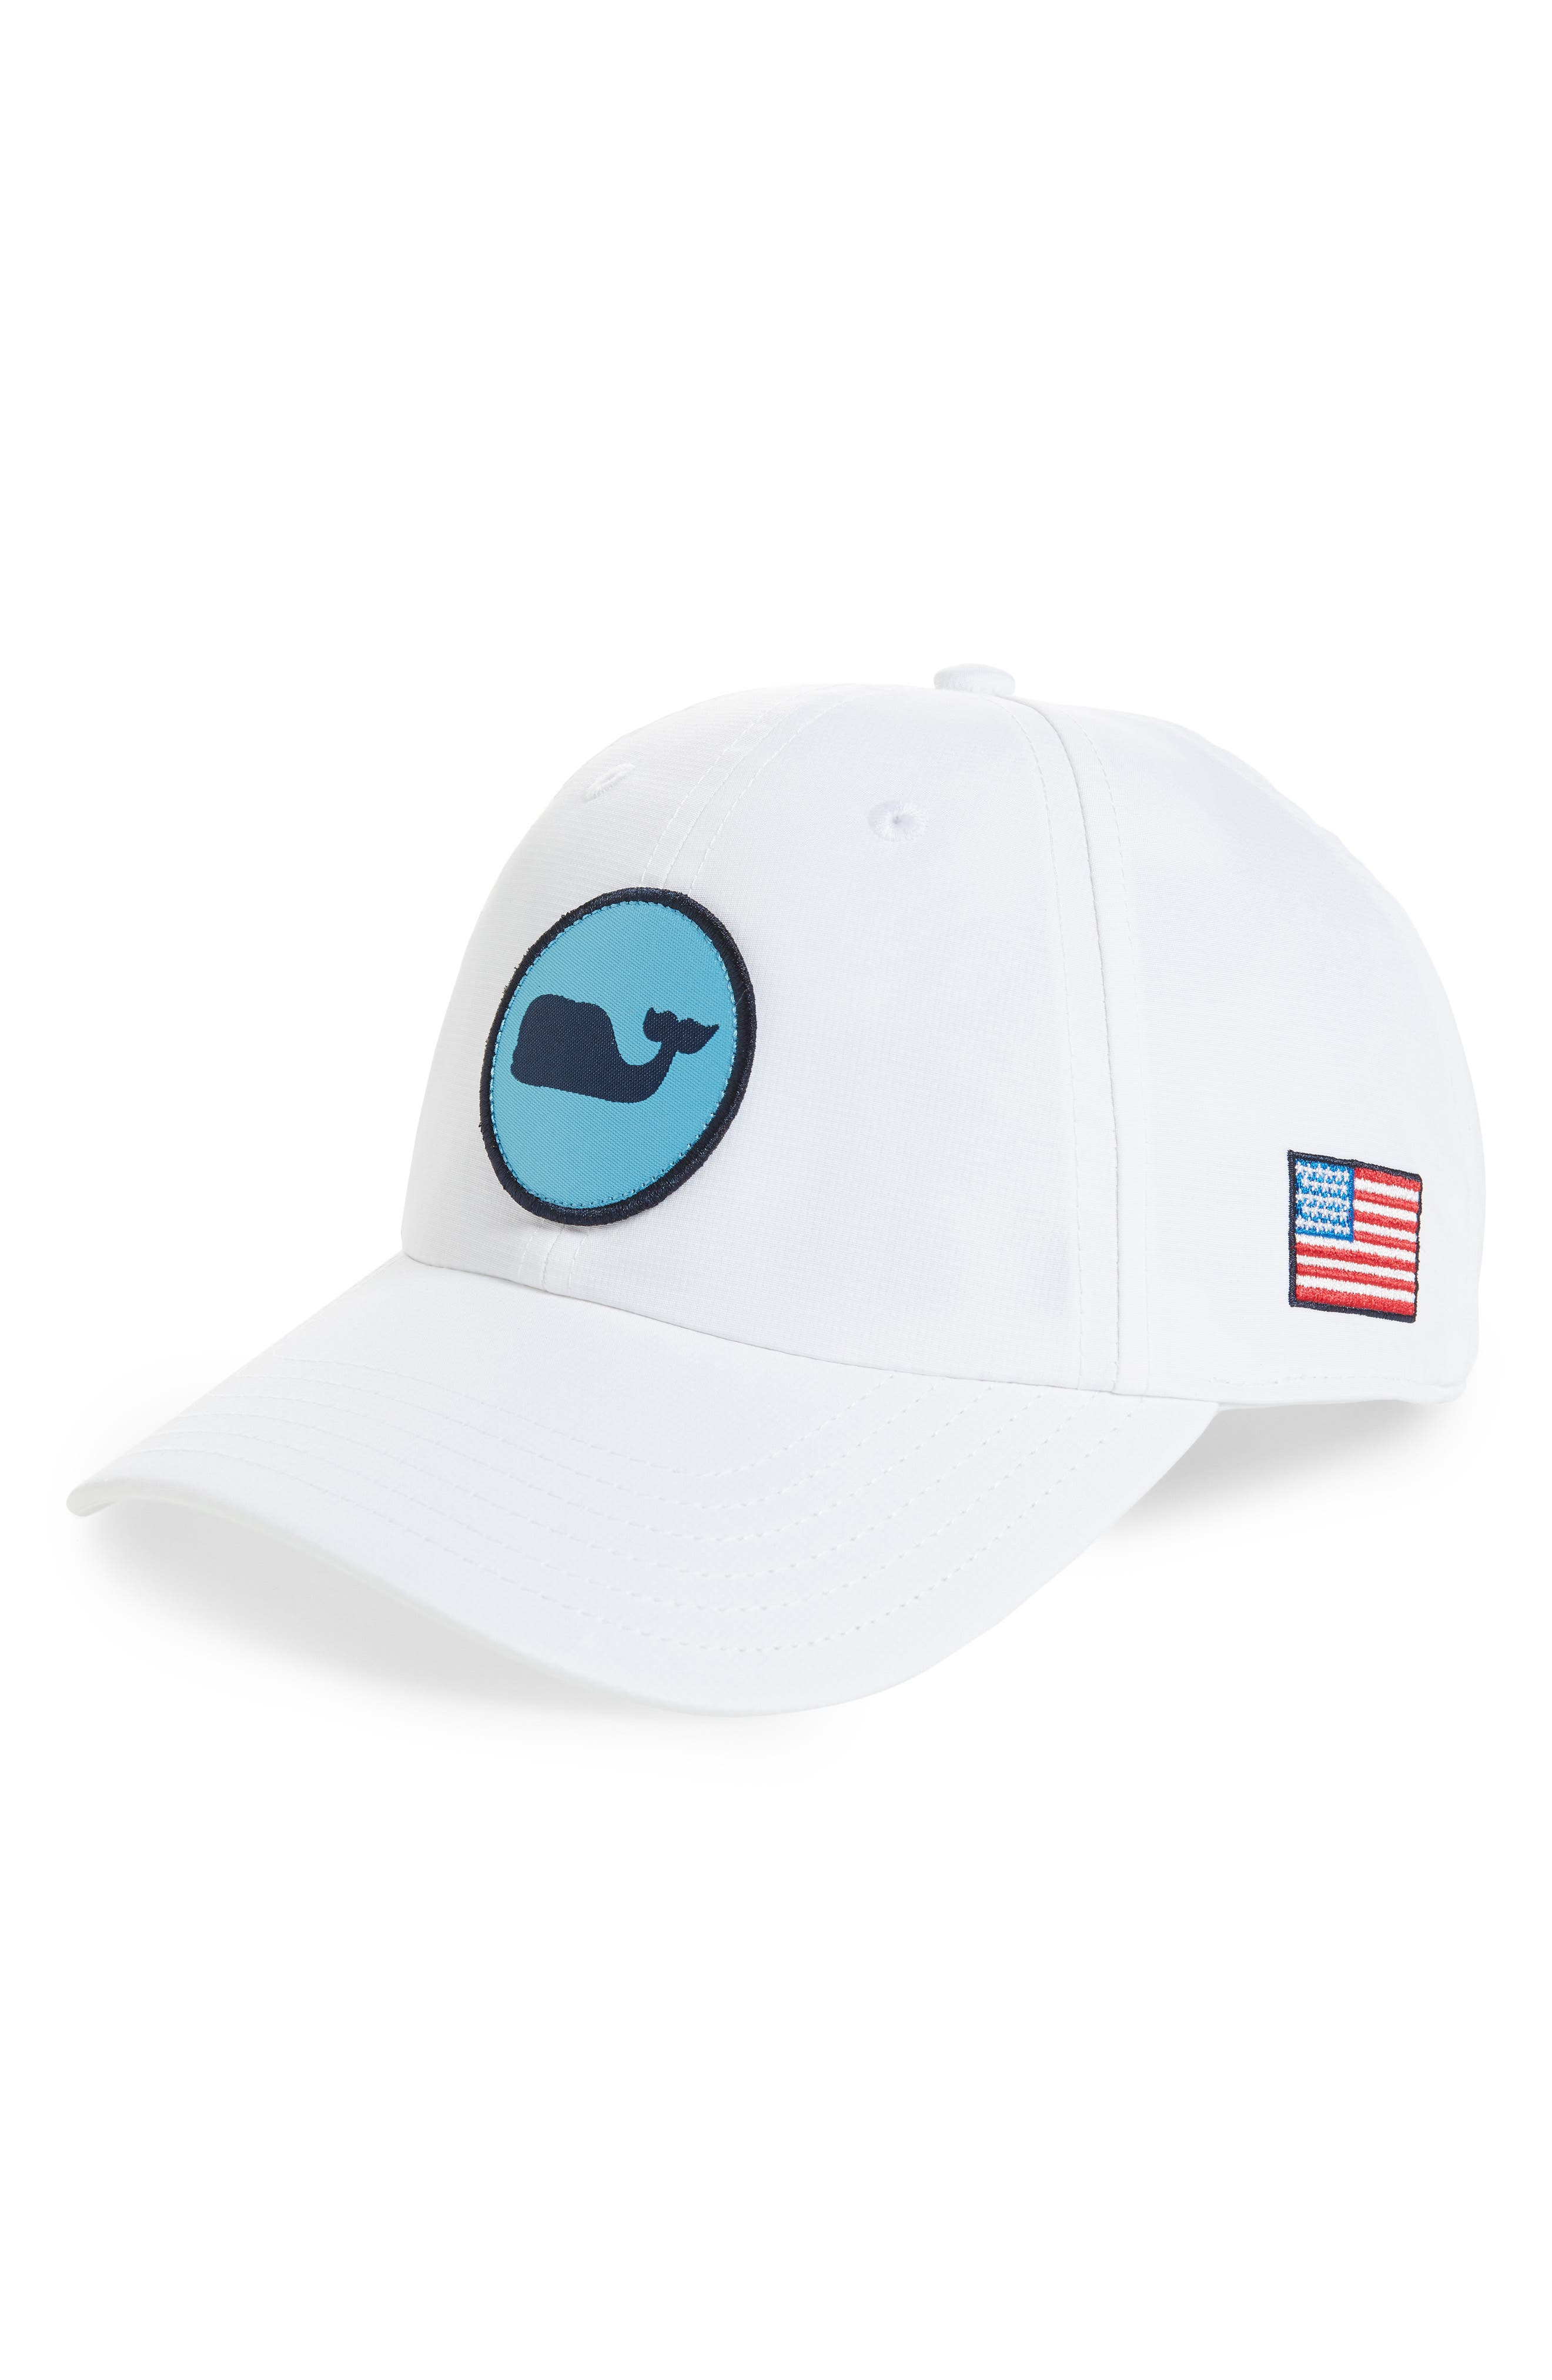 Perf Classic Woven Whale Ball Cap,                         Main,                         color, 100